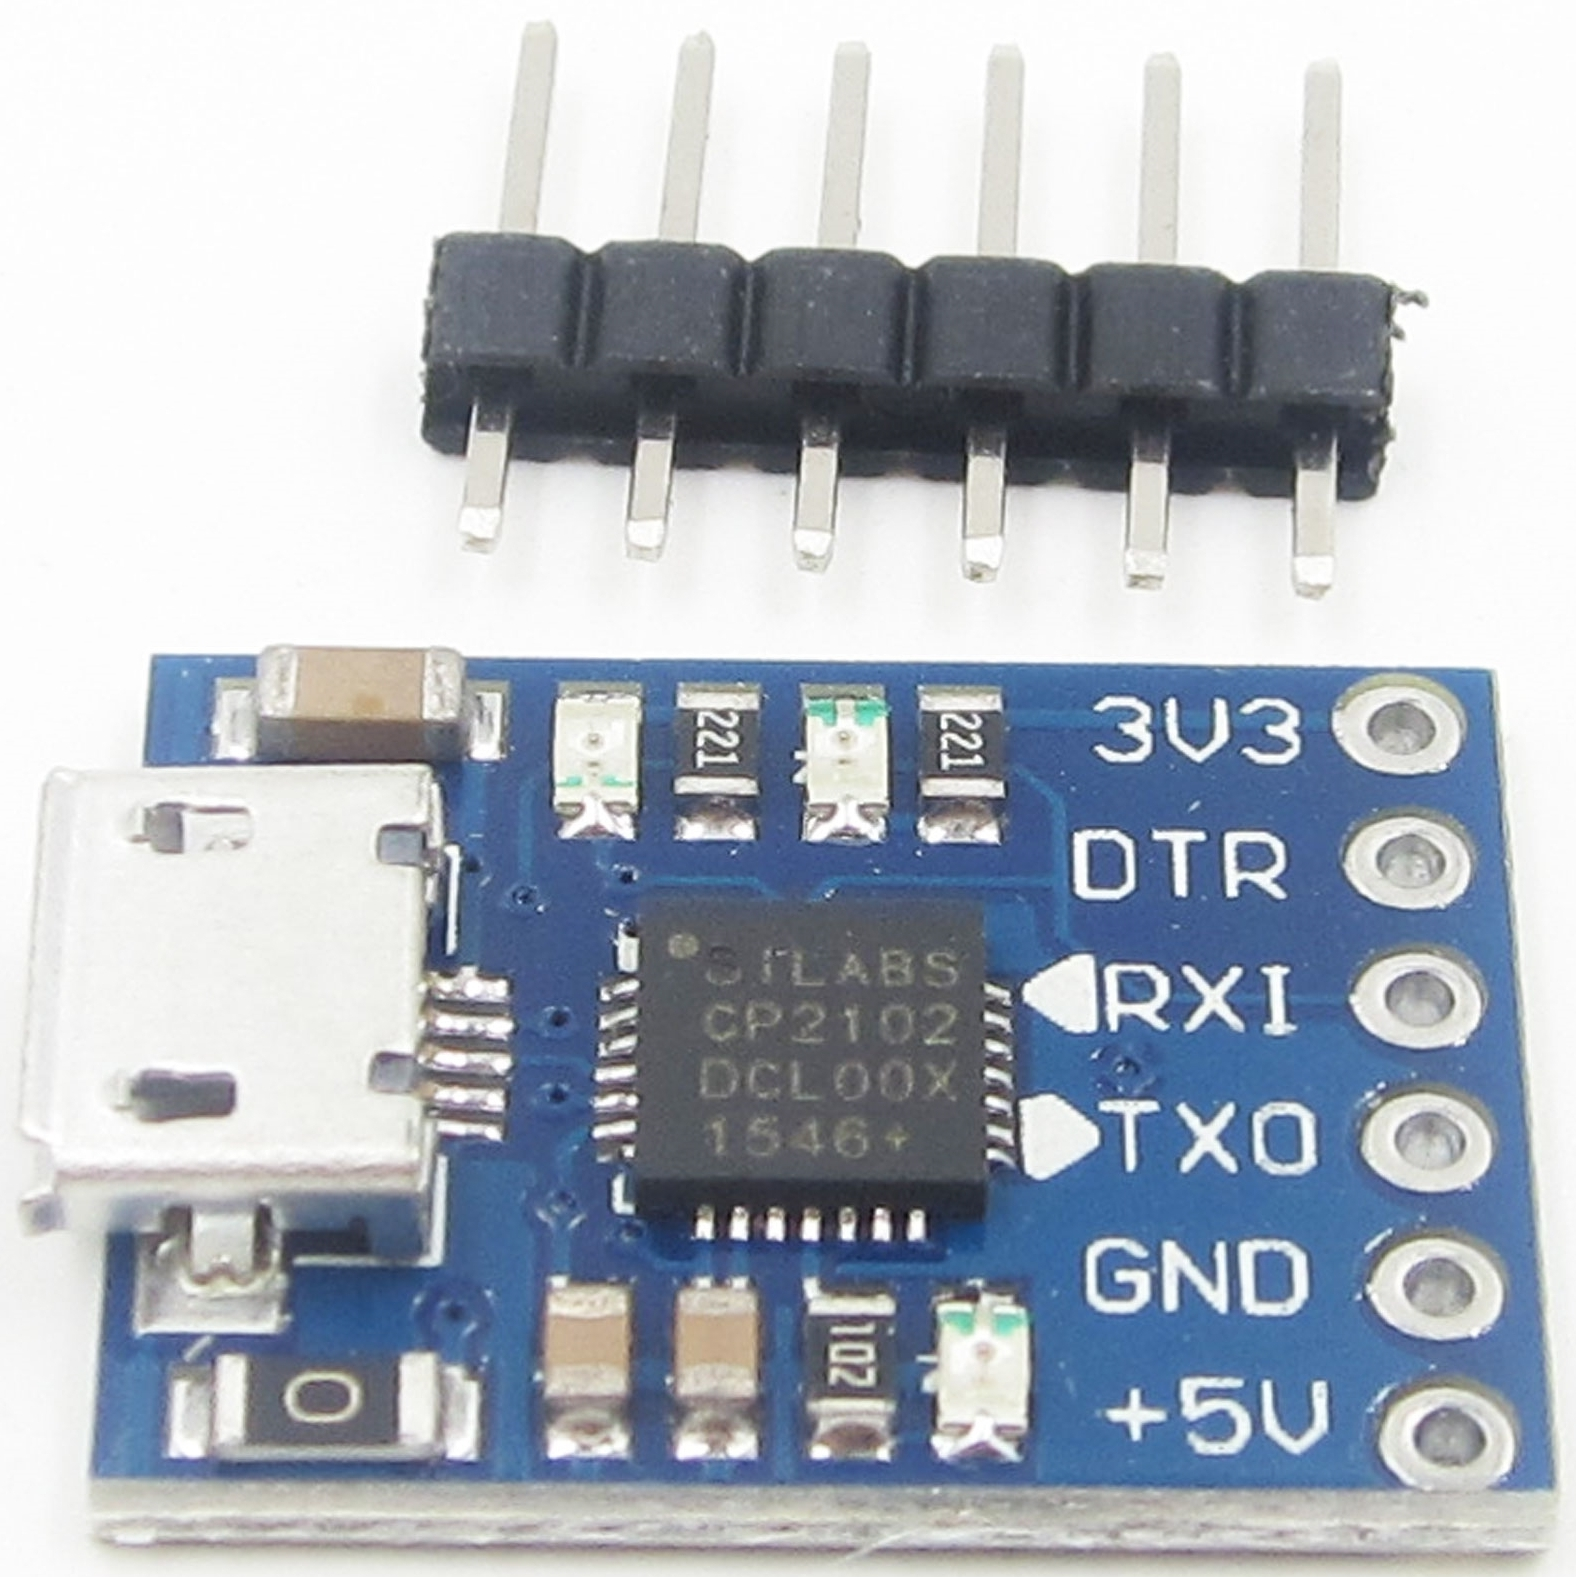 CP2102 - Silabs USB/serial converter - parts submit - fritzing forum